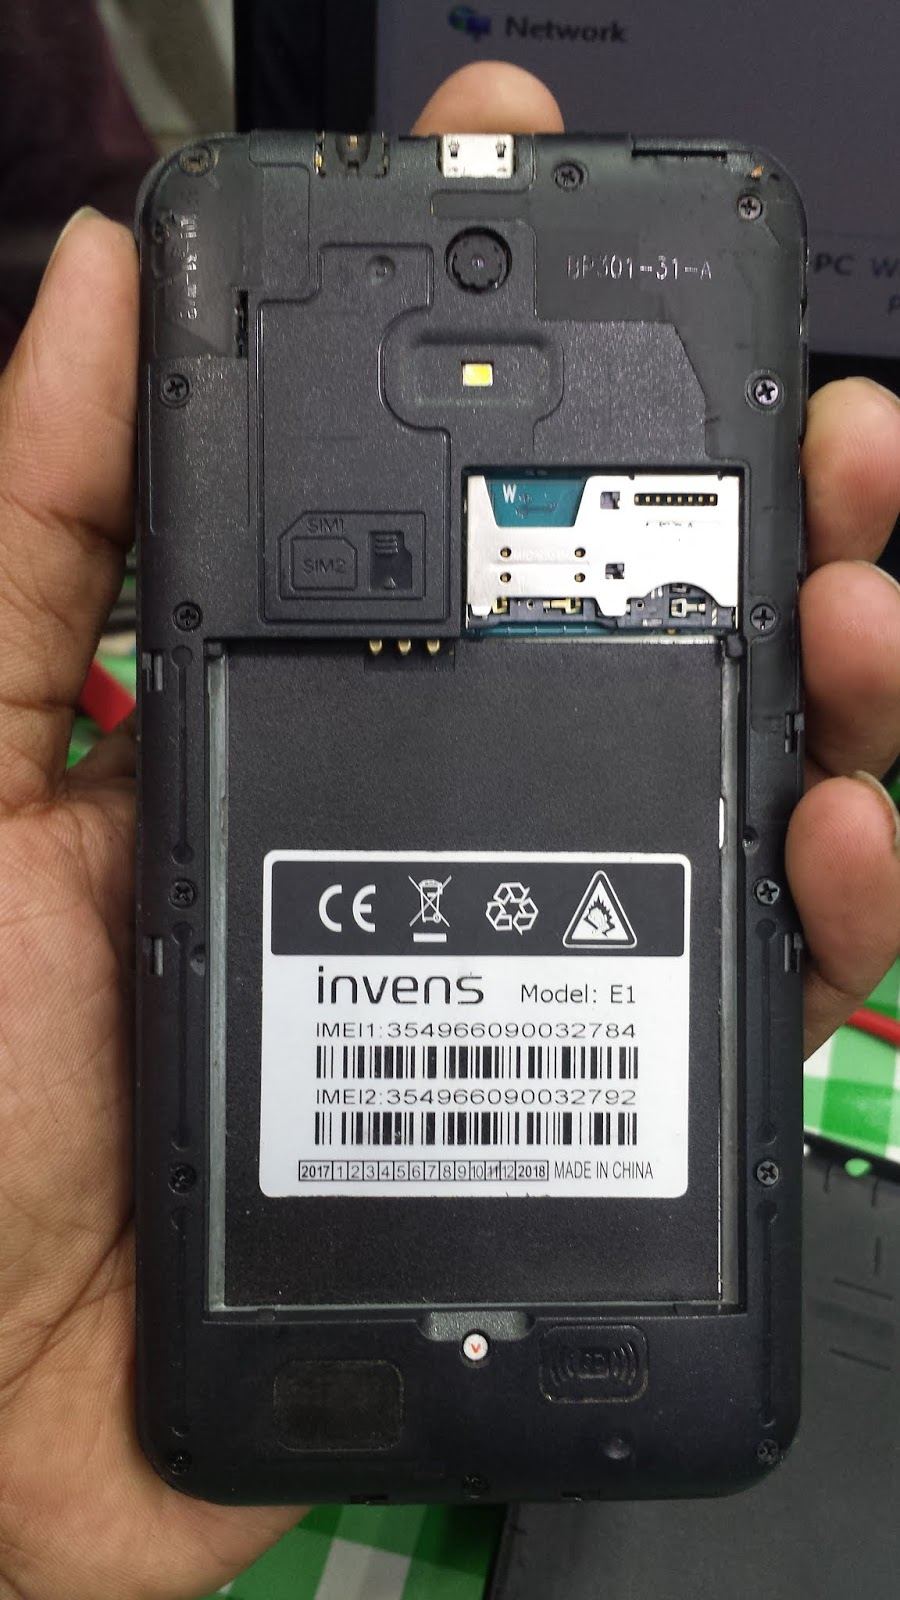 Invens E1 Stock Firmware SP7731 6.0 Tested